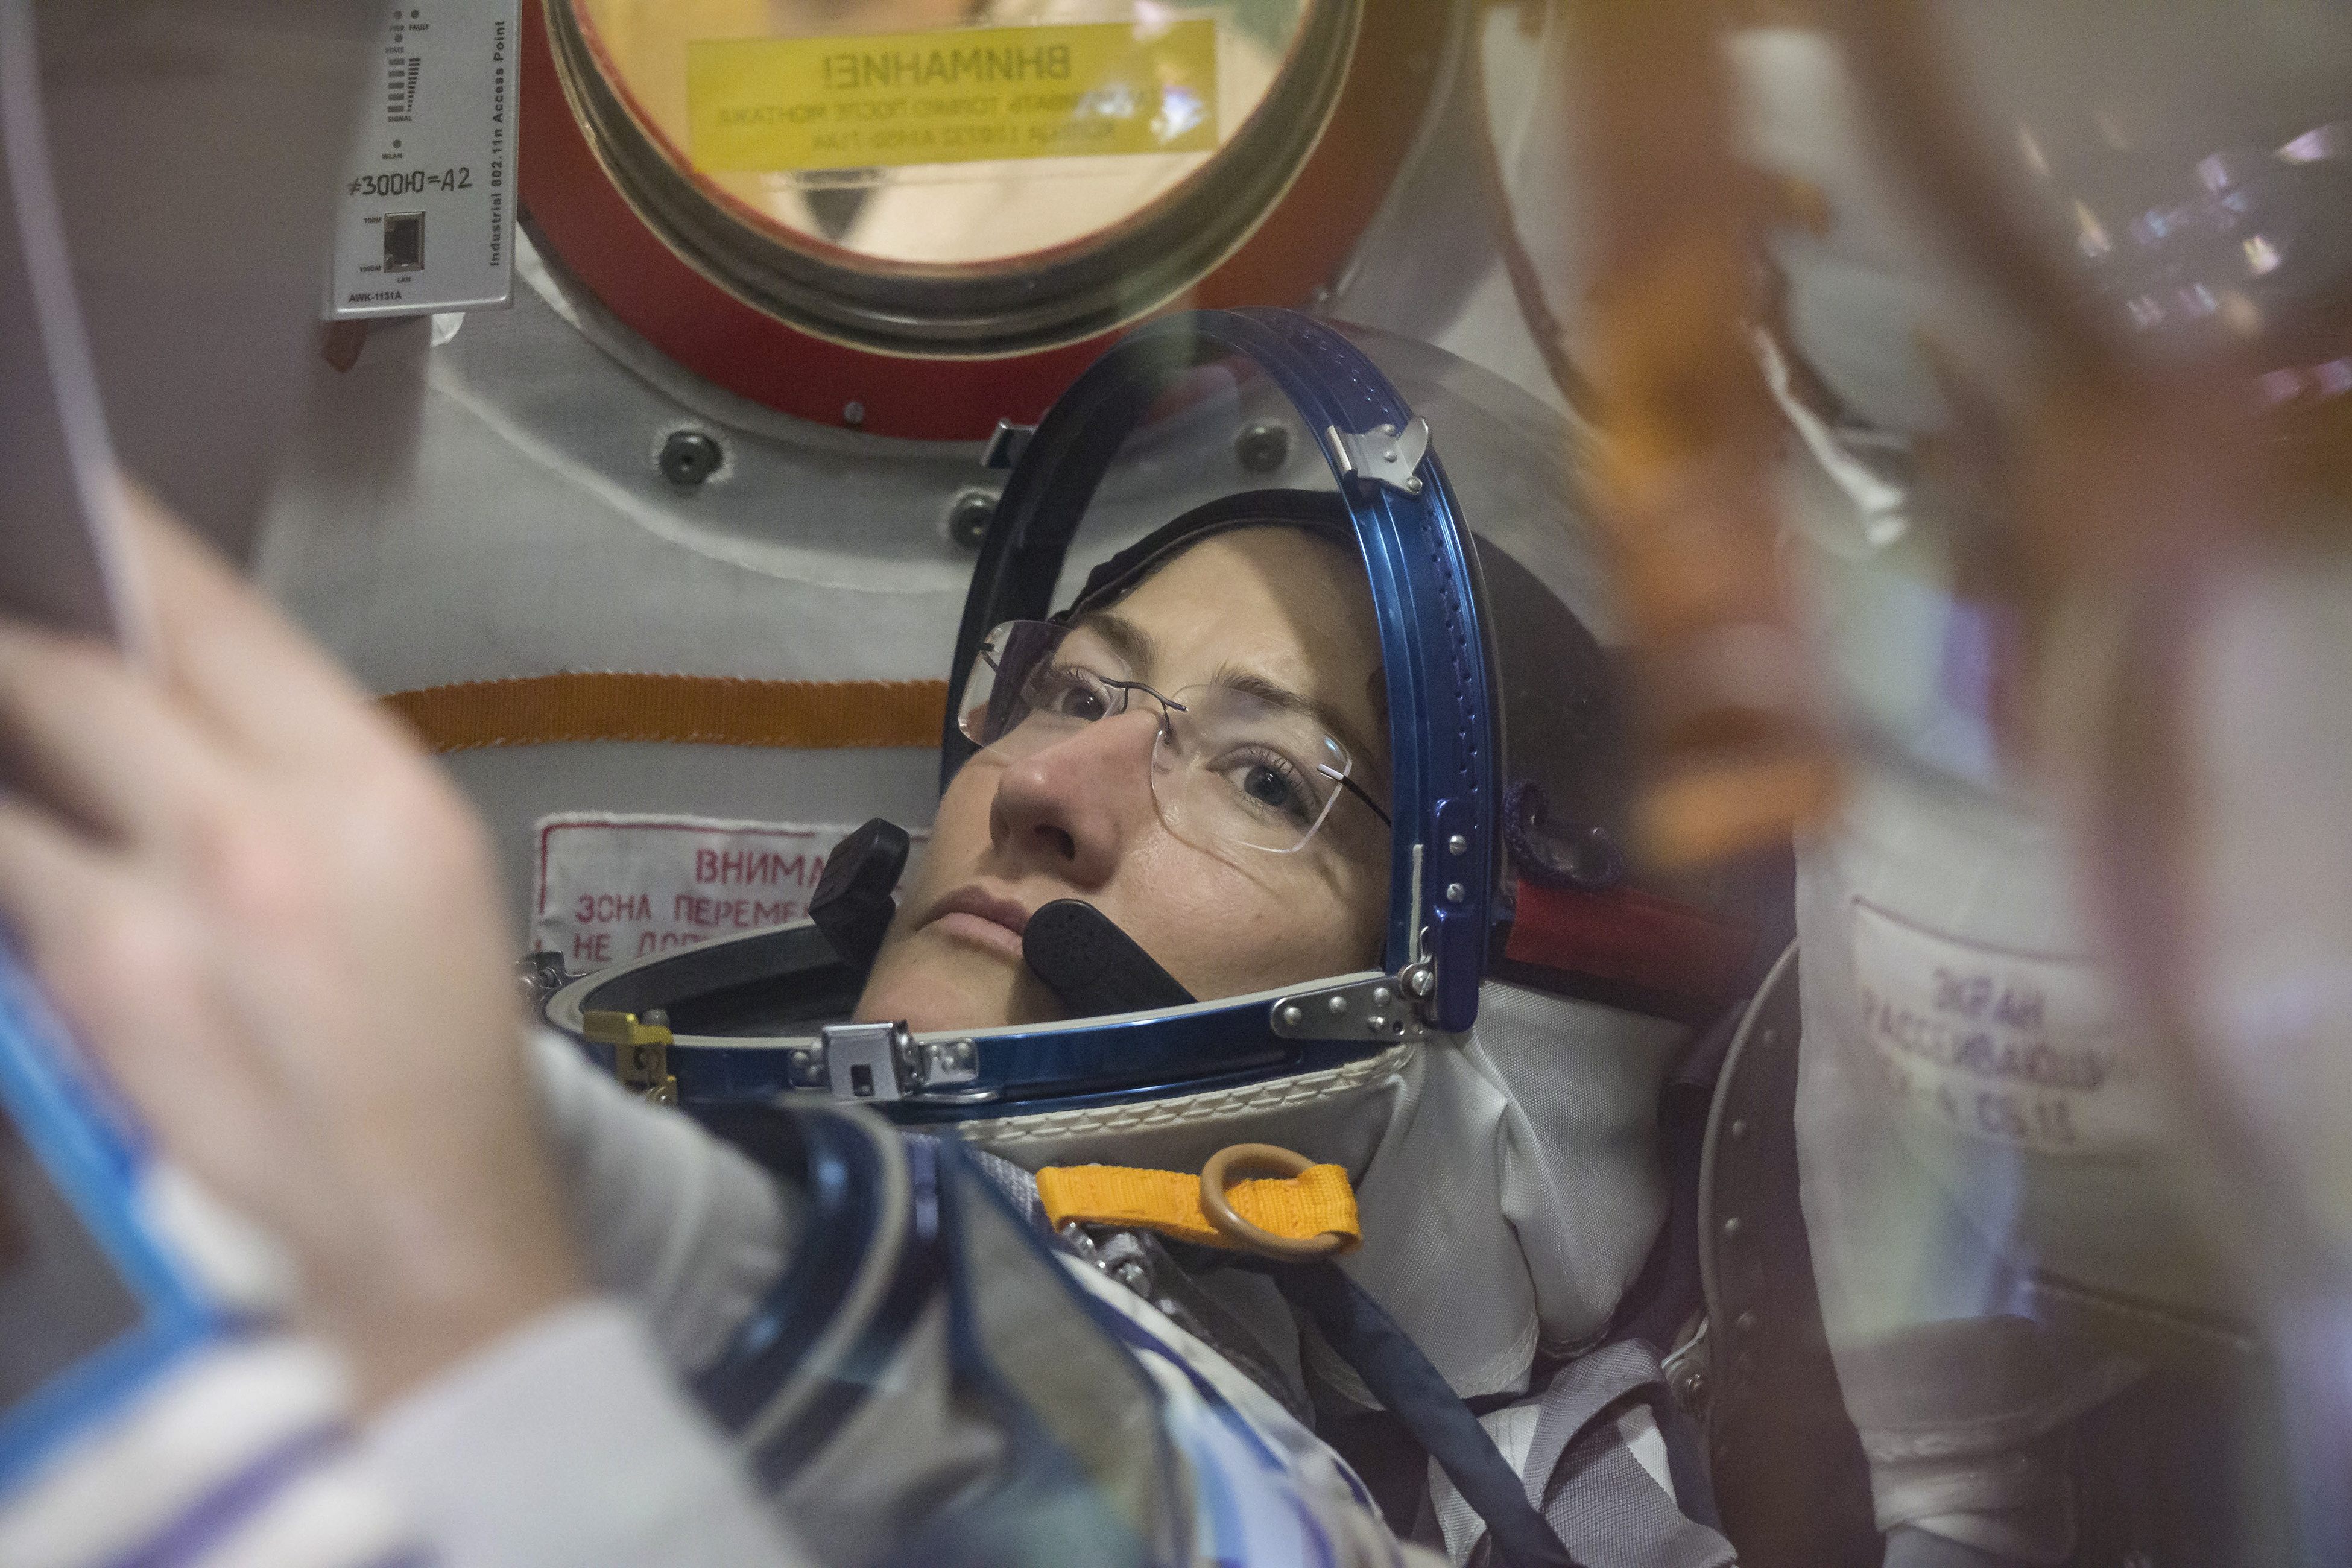 A photo provided by NASA of Christina Koch working inside the Soyuz MS-12 spacecraft at the Baikonur Cosmodrome in Kazakhstan.